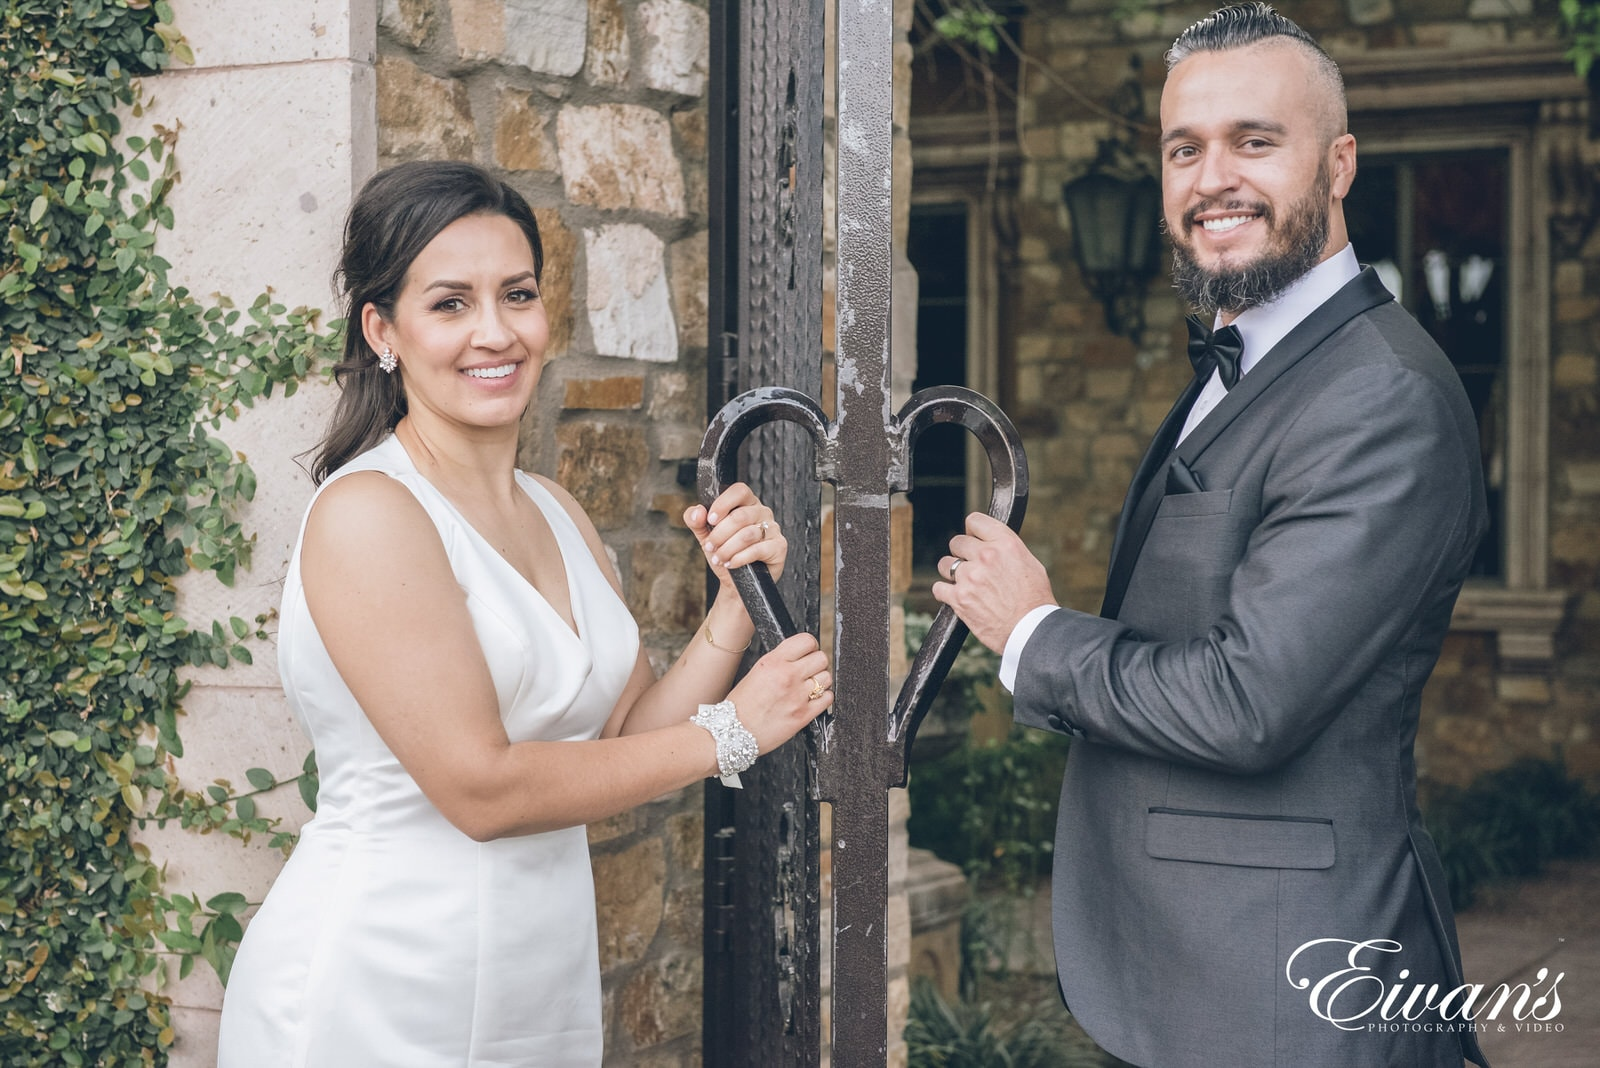 married man and woman standing next to a rusty gate